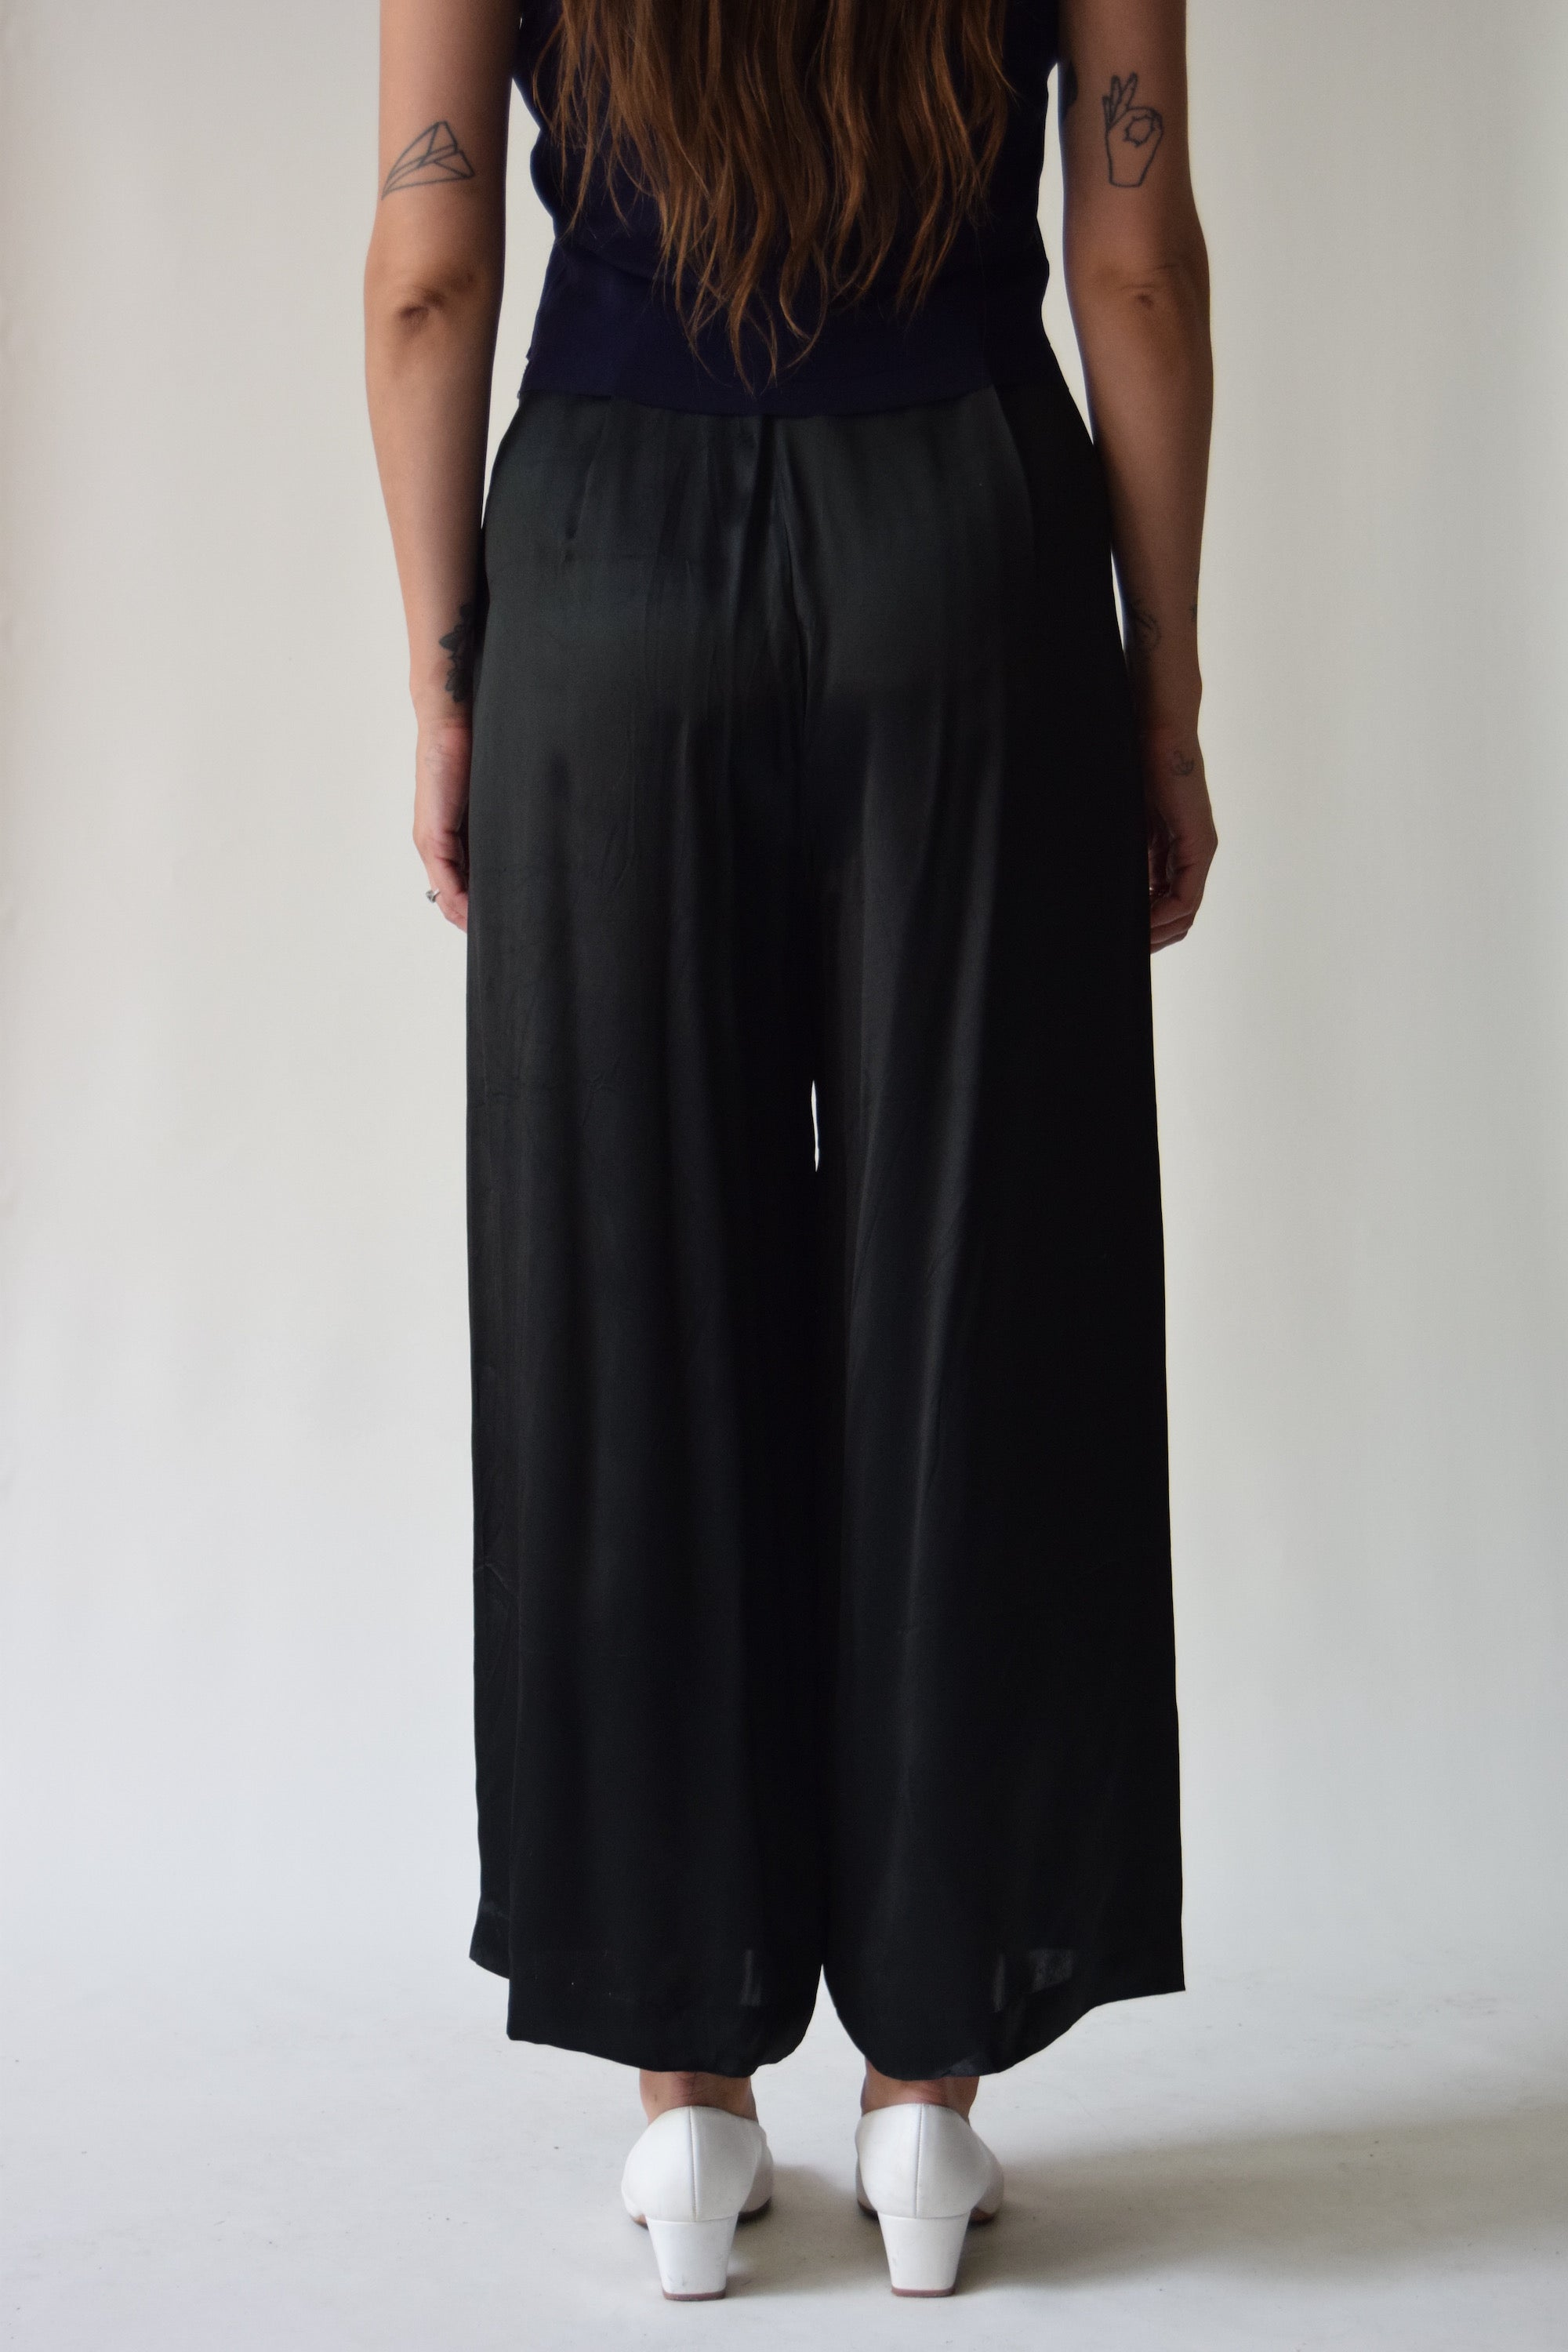 Vintage Black Satin Wide Leg Trousers FREE SHIPPING TO THE U.S.